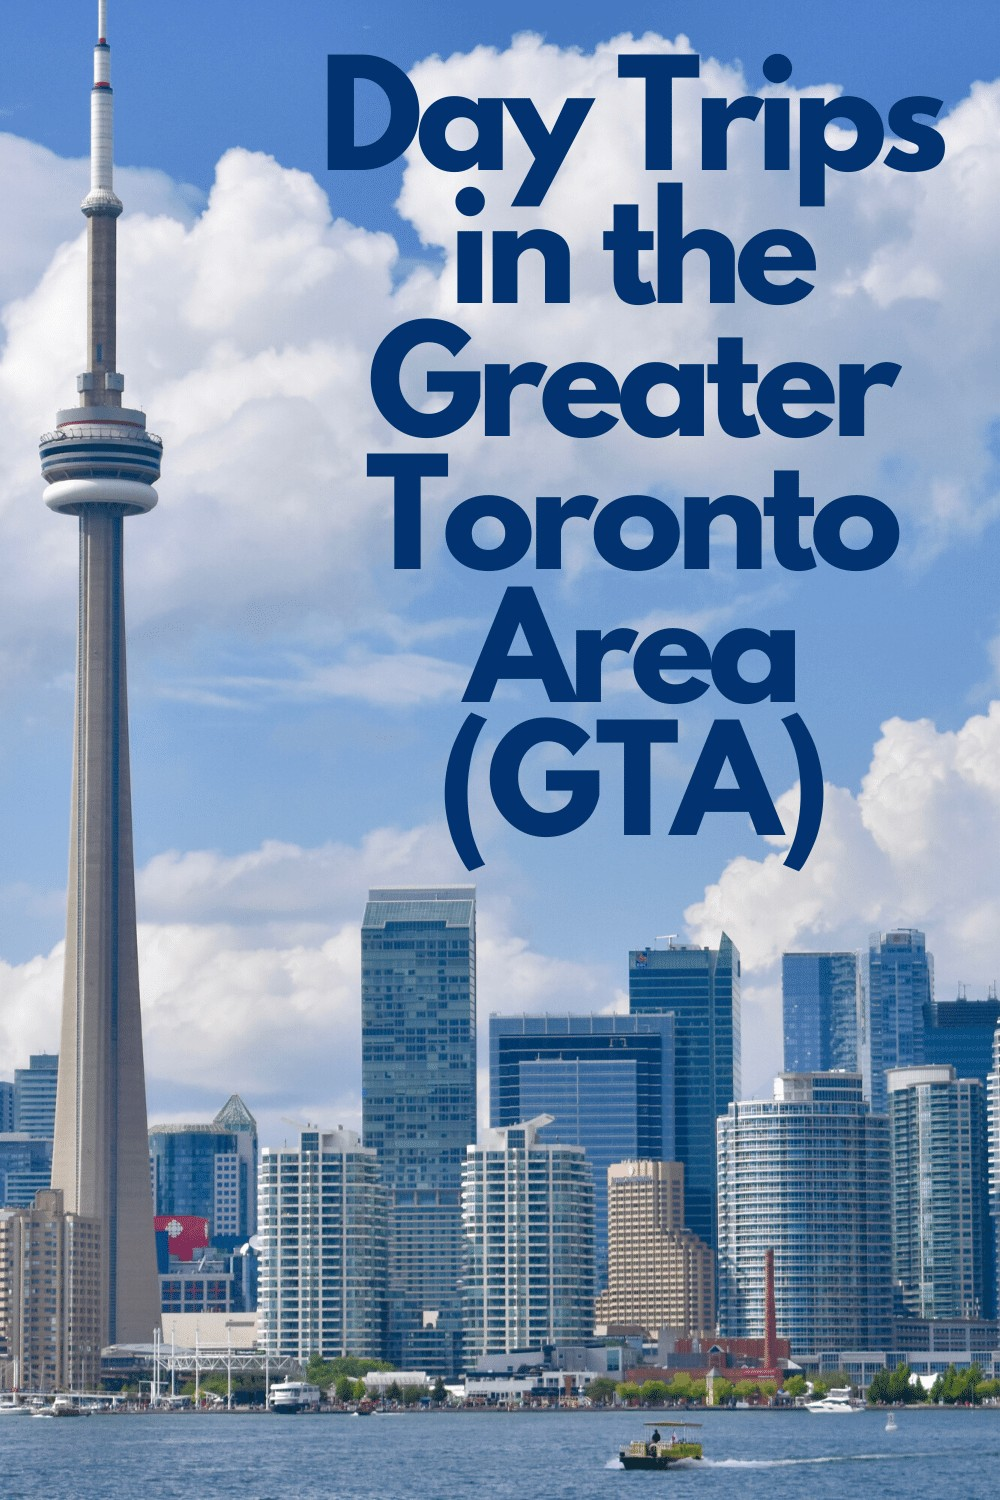 Day Trips in the Greater Toronto Area